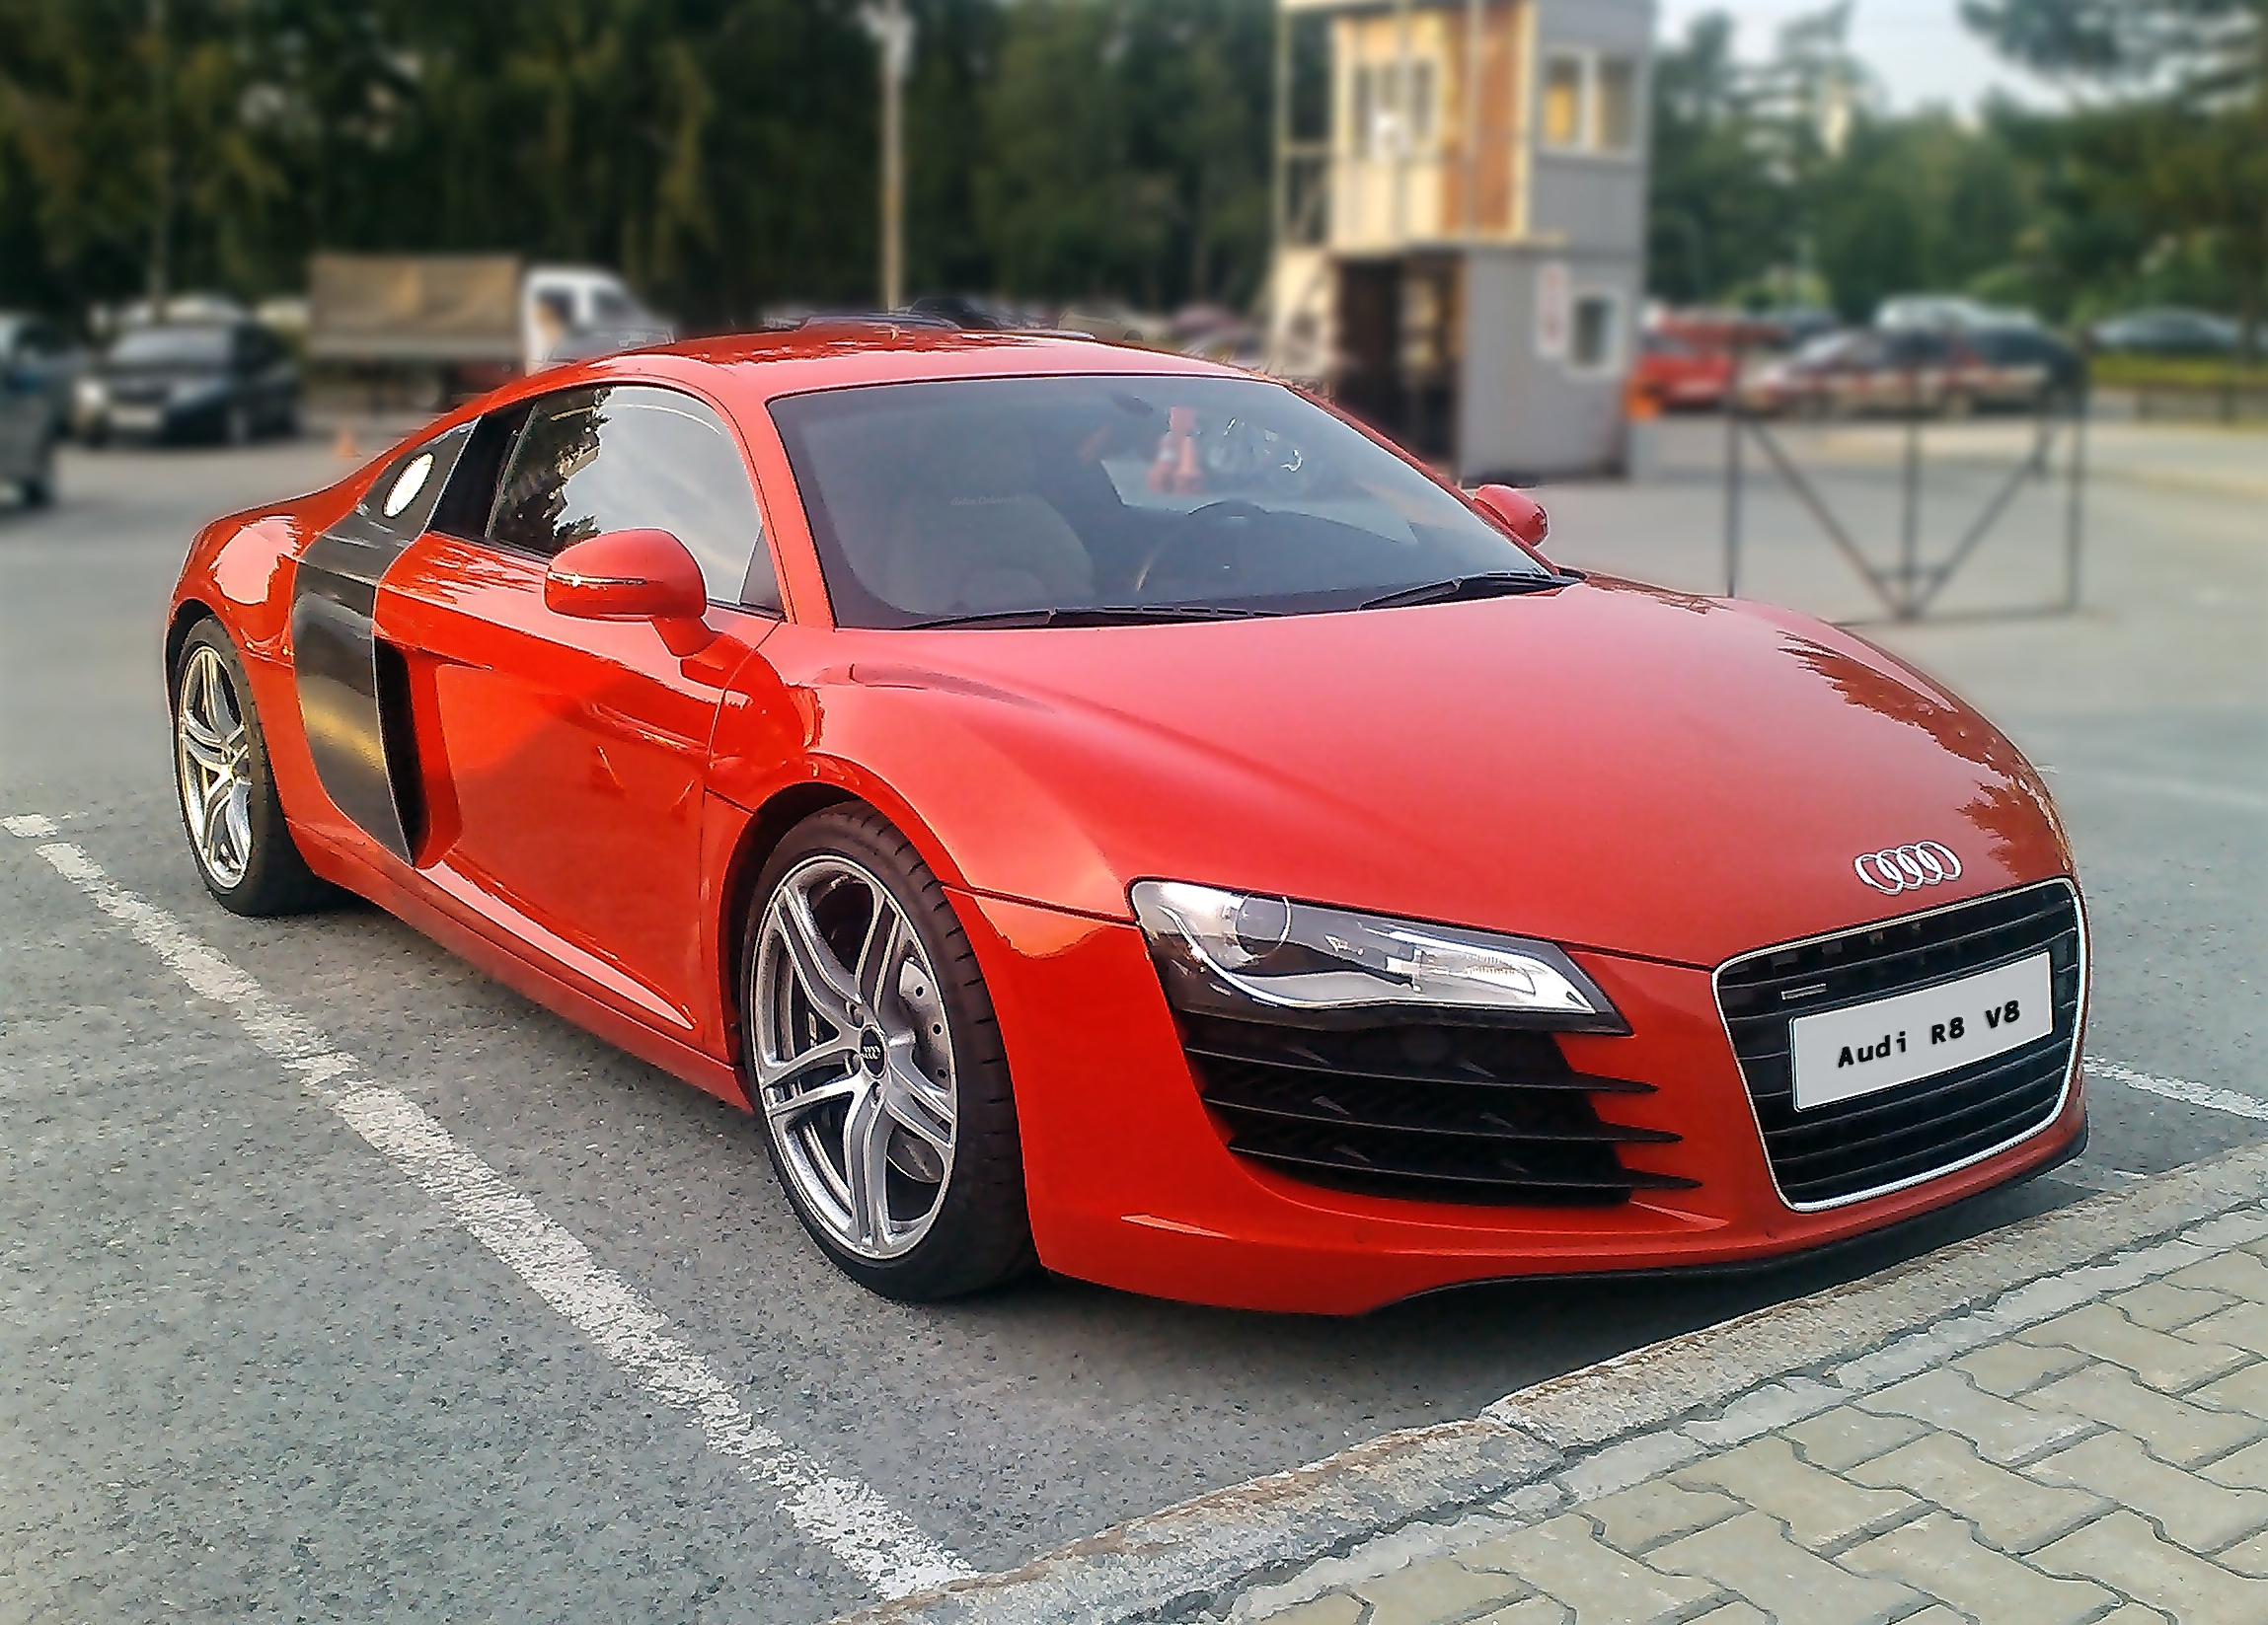 Audi R8 AA front view in red